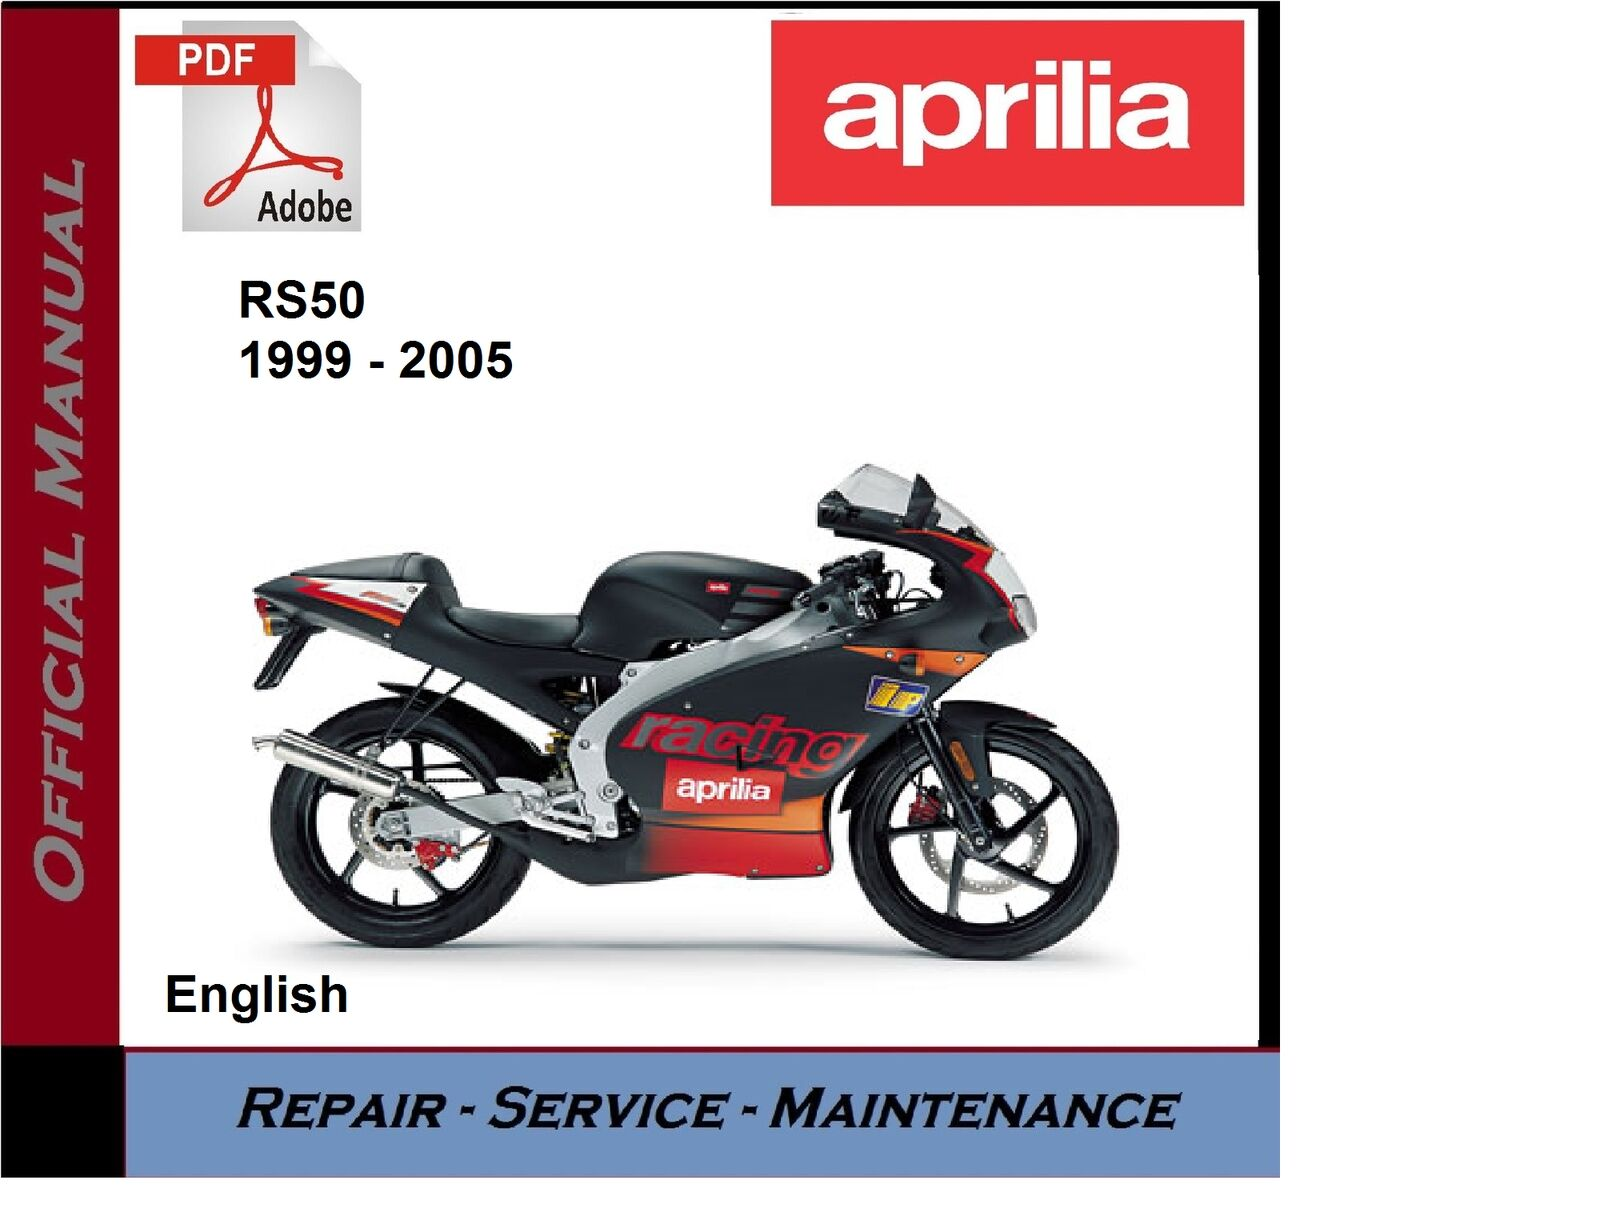 Aprilia RS50 1999 - 2005 RS 50 Workshop Service Repair Manual 1 of 1FREE  Shipping See More